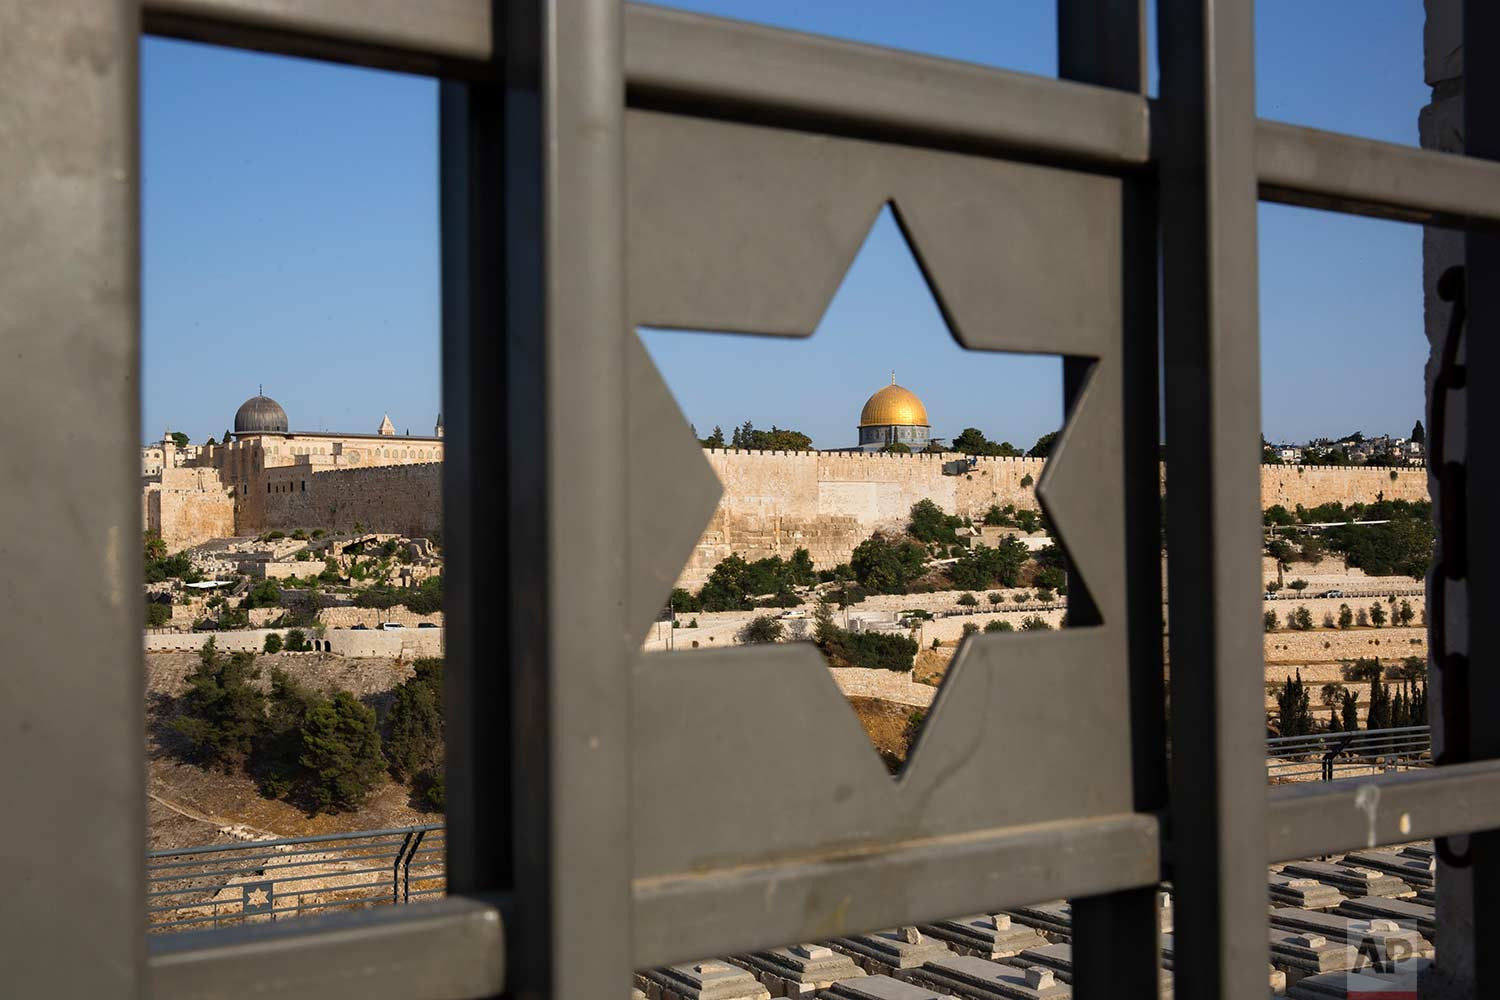 The Islamic Dome of the Rock in Jerusalem's Old City is seen trough a door decorated with a Jewish Star of David, Tuesday, July 25, 2017. (AP Photo/Oded Balilty)